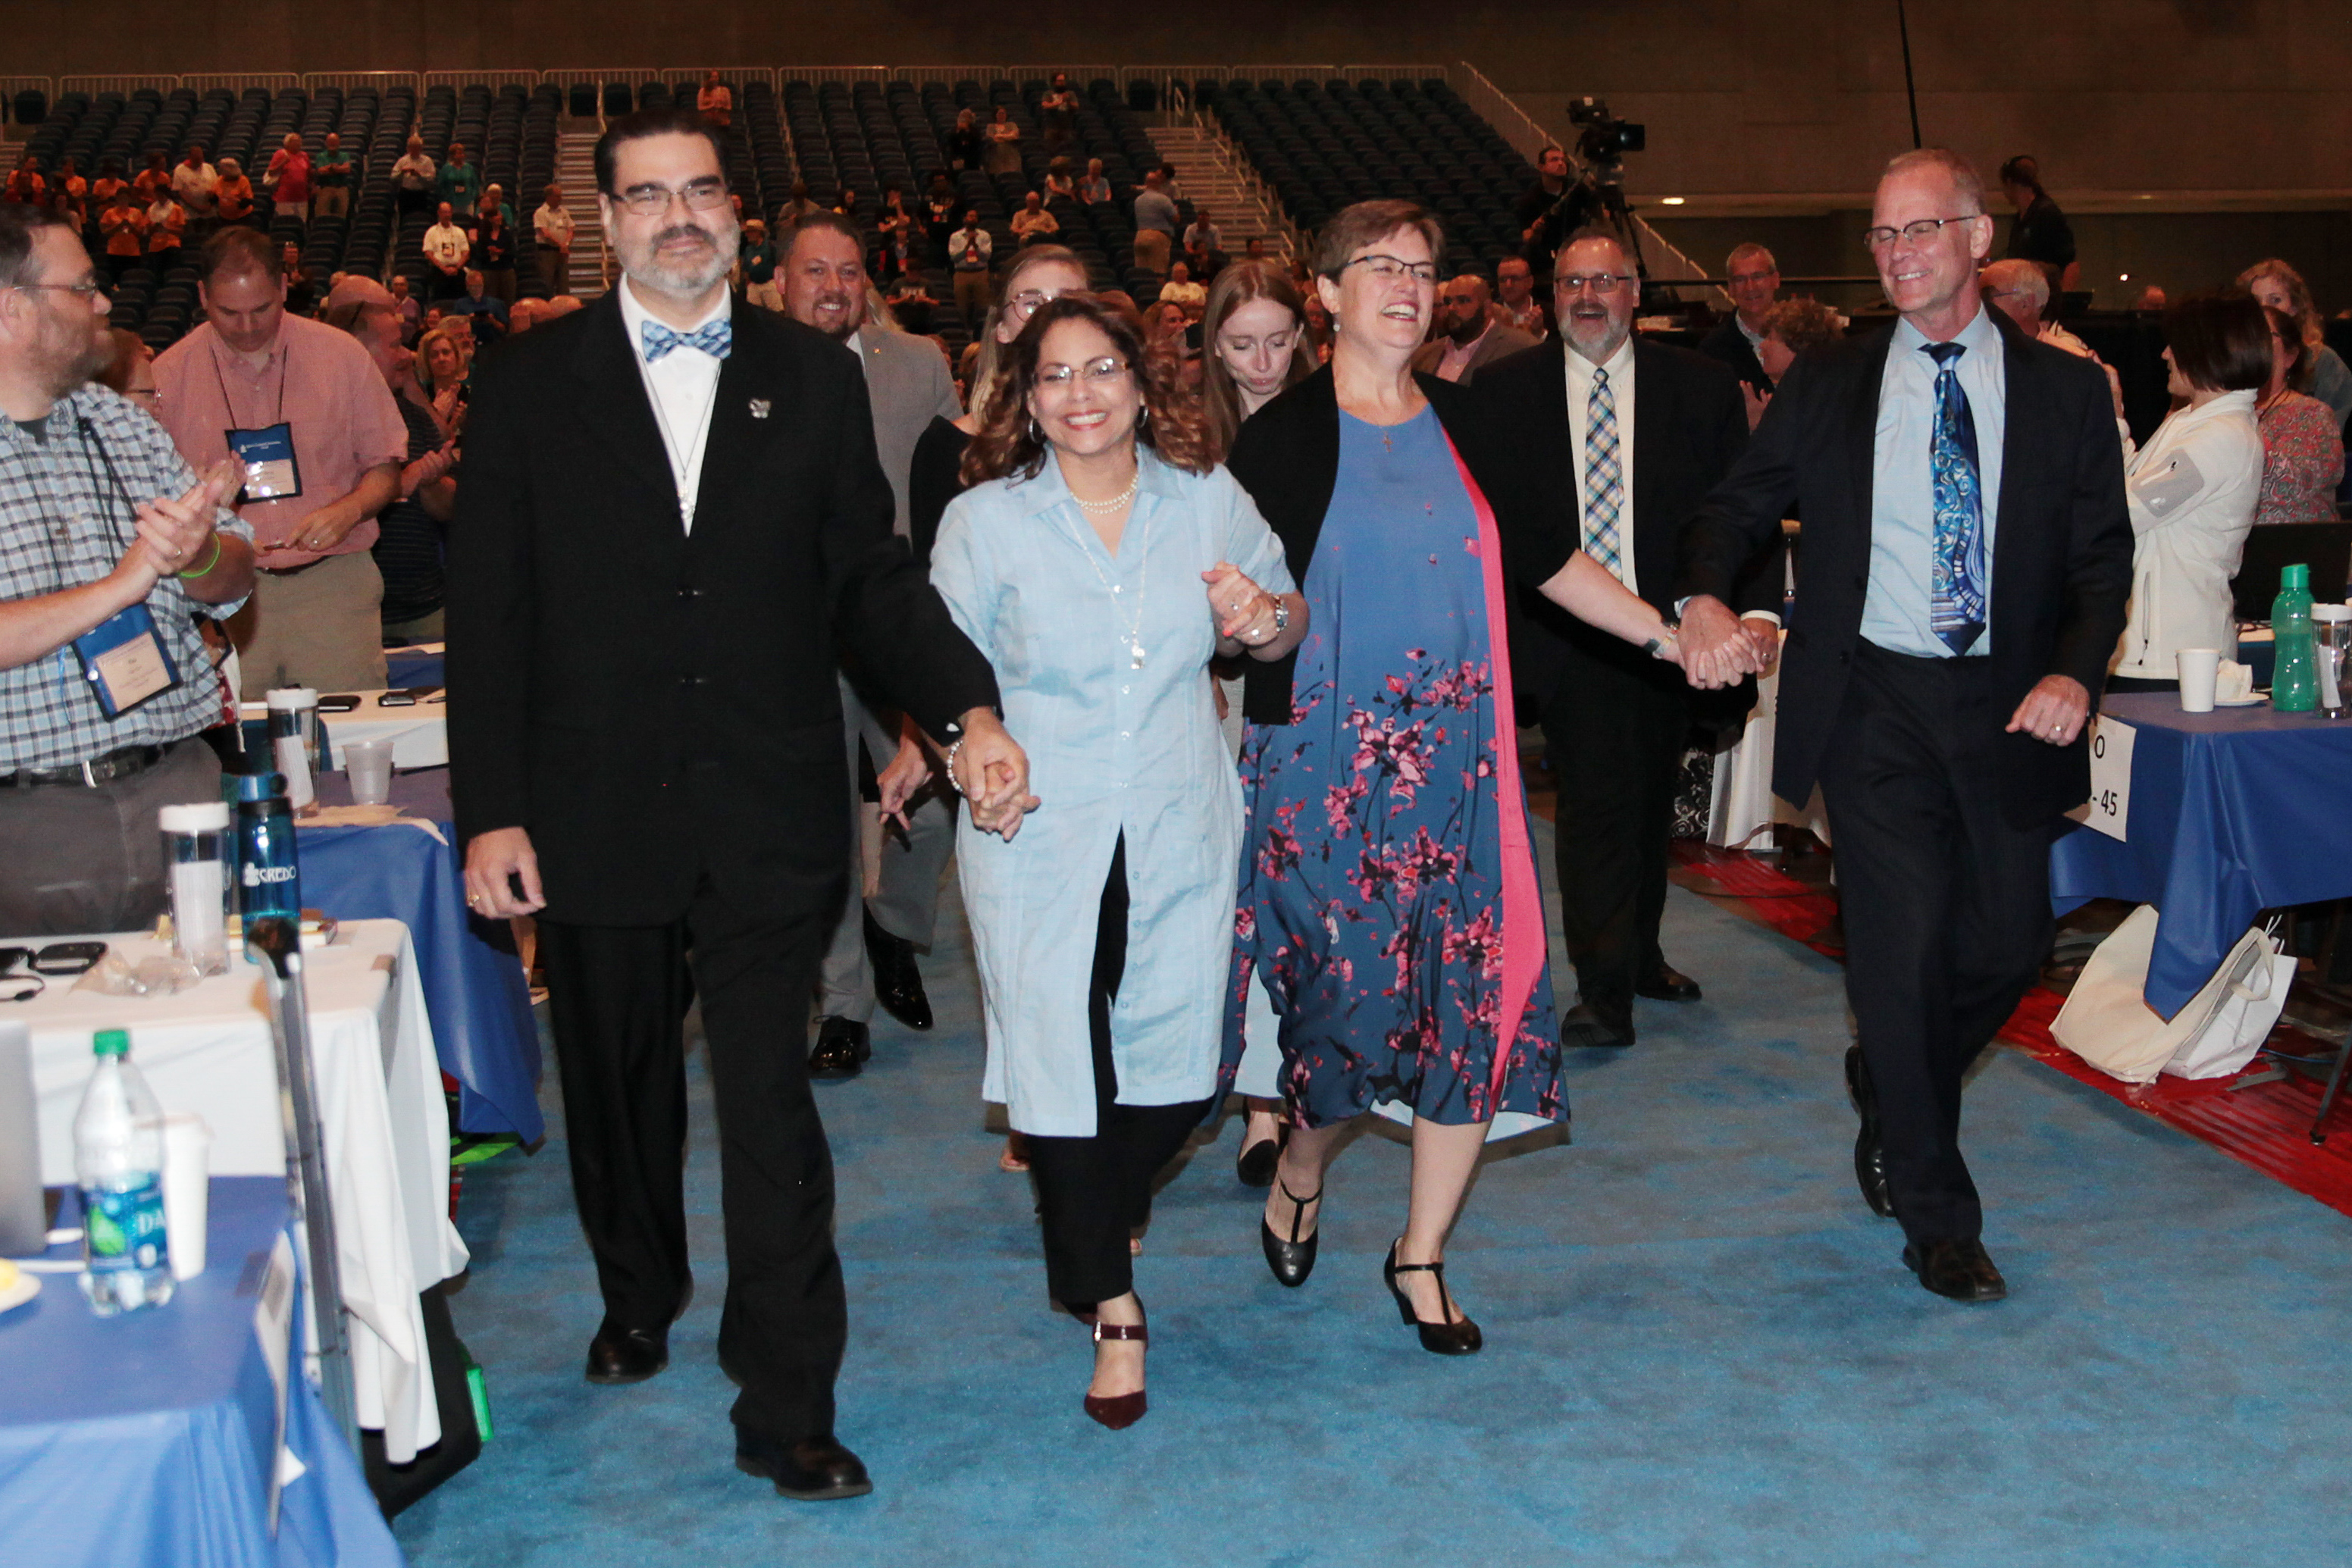 Vilmarie Cintrón-Olivieri (center-left) and Cindy Kohlmann (center-right) enter the plenary hall after their election as co-moderators. Photo by Danny Bolin.